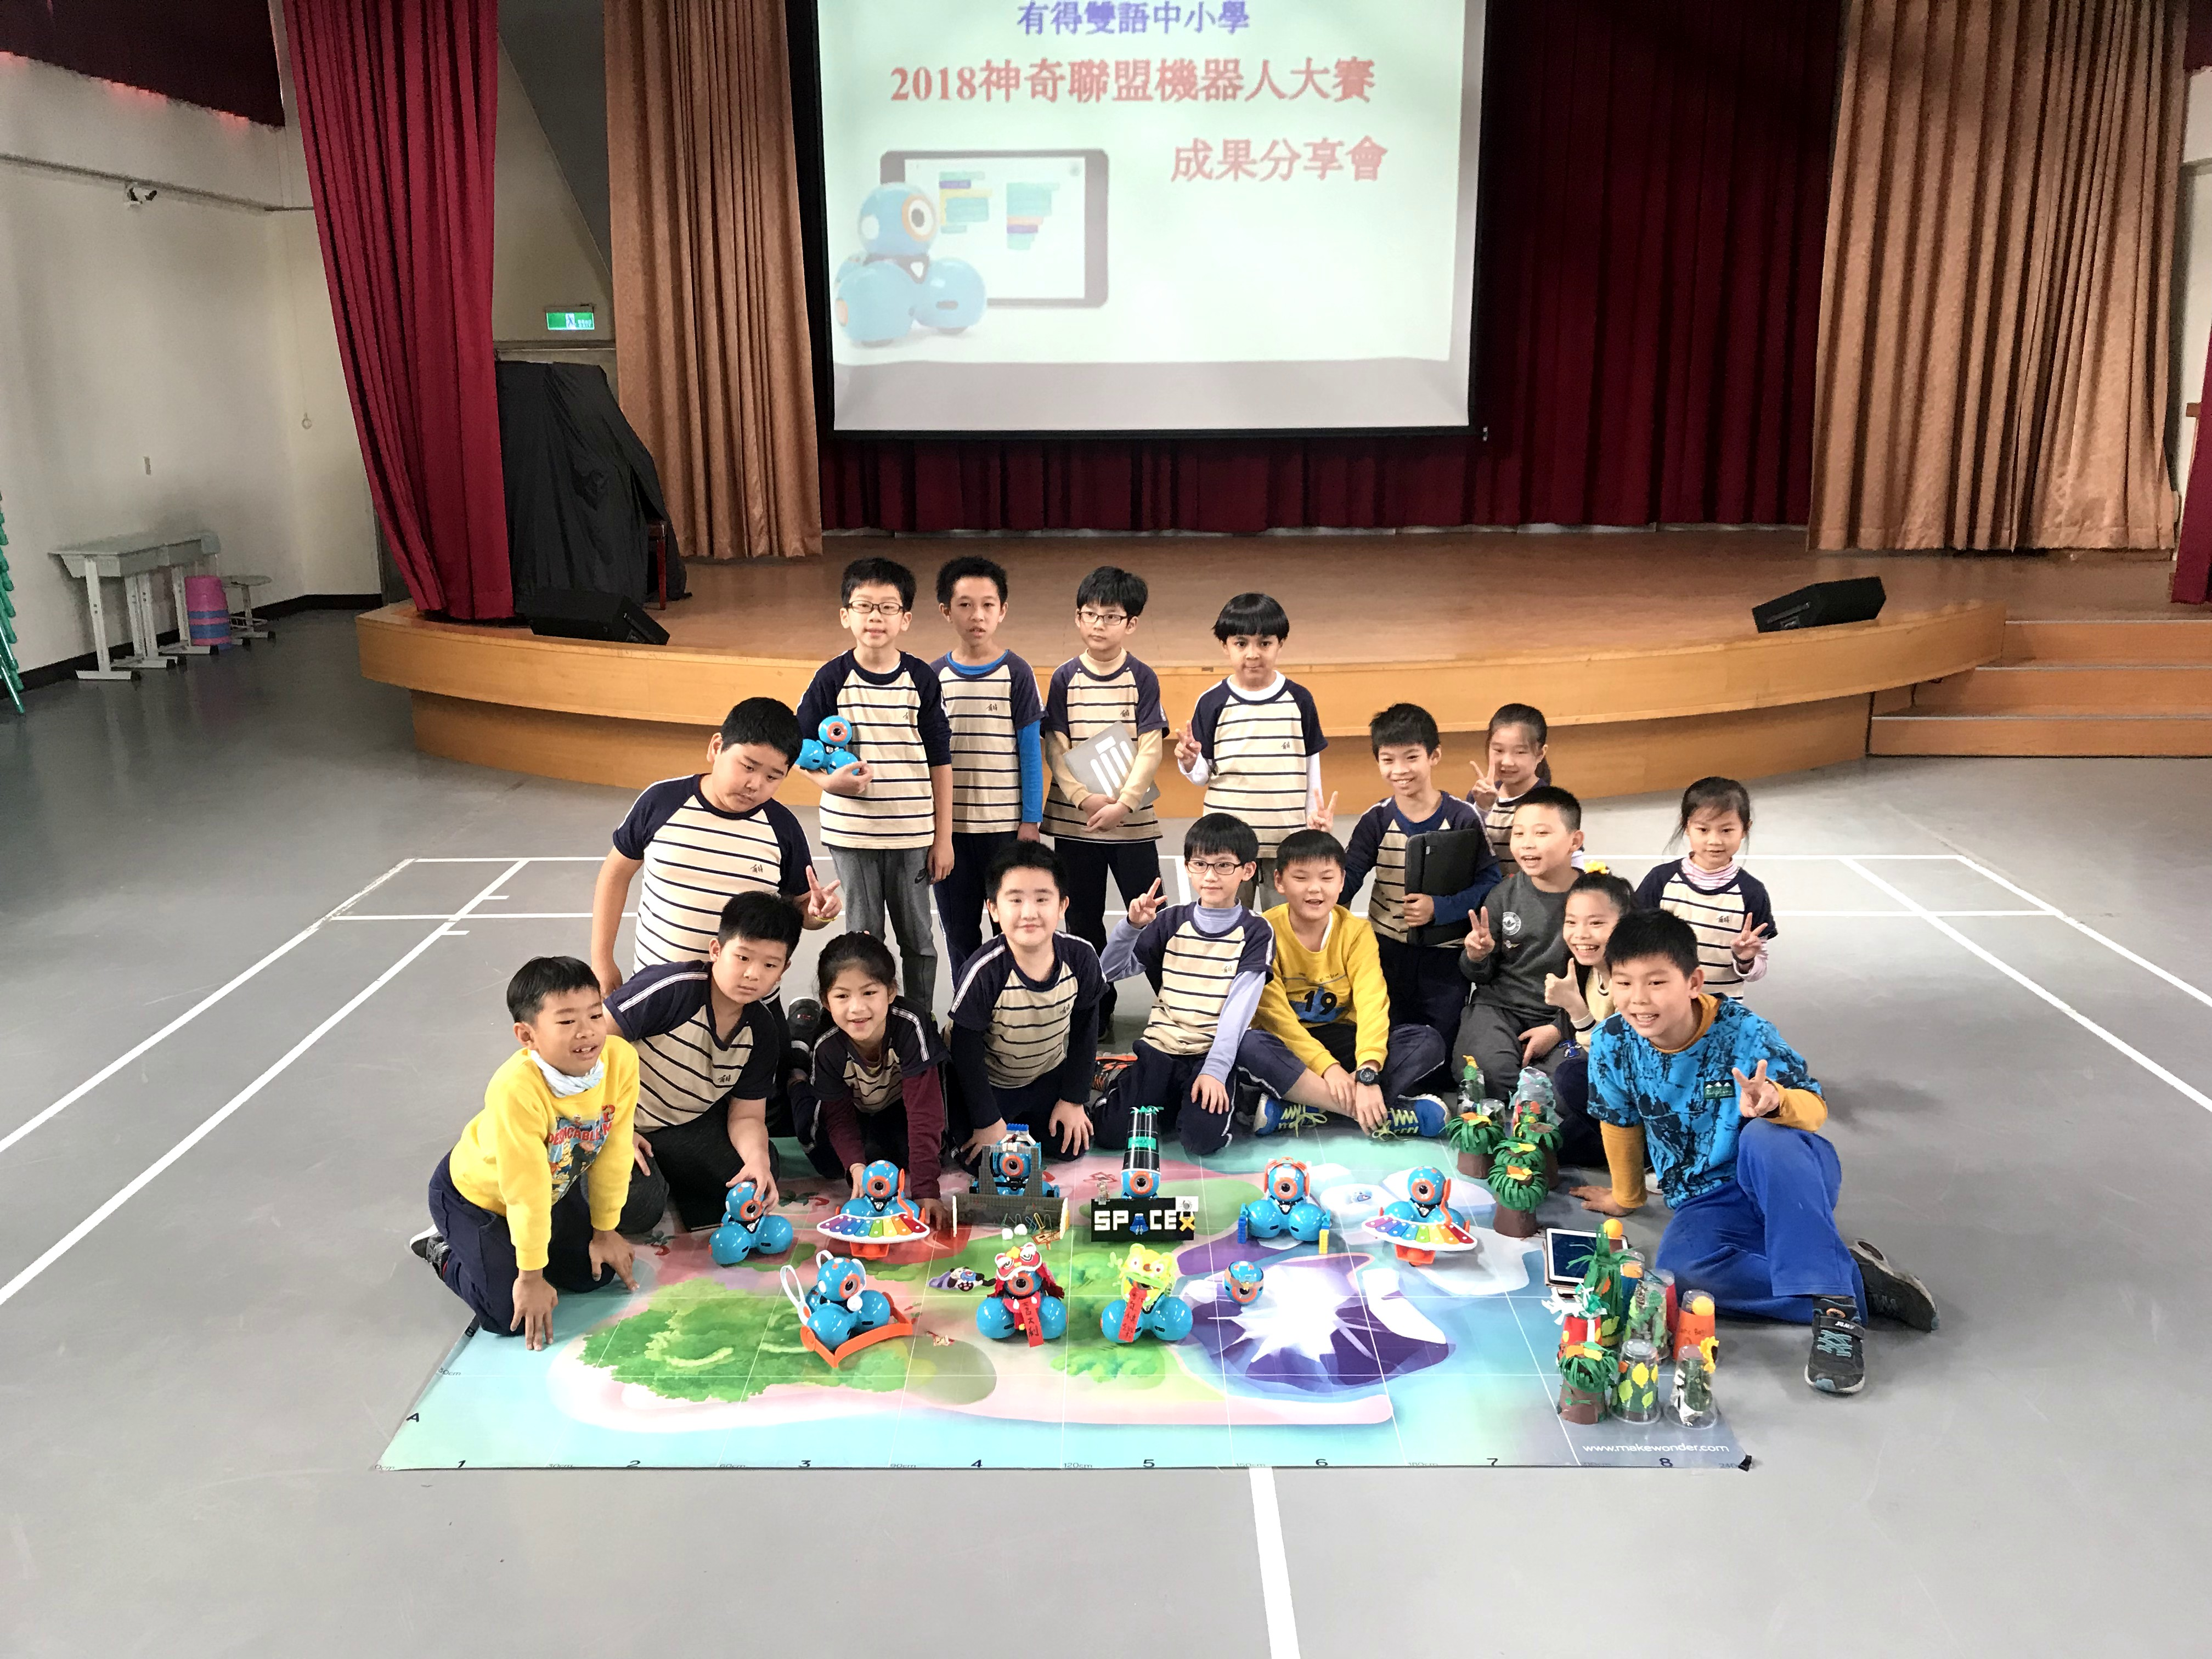 Teaching English and Living in Taiwan Jobs Available 教學工作, Yoder Bilingual Academy Top private school in Taoyuan is looking for native English teachers  image